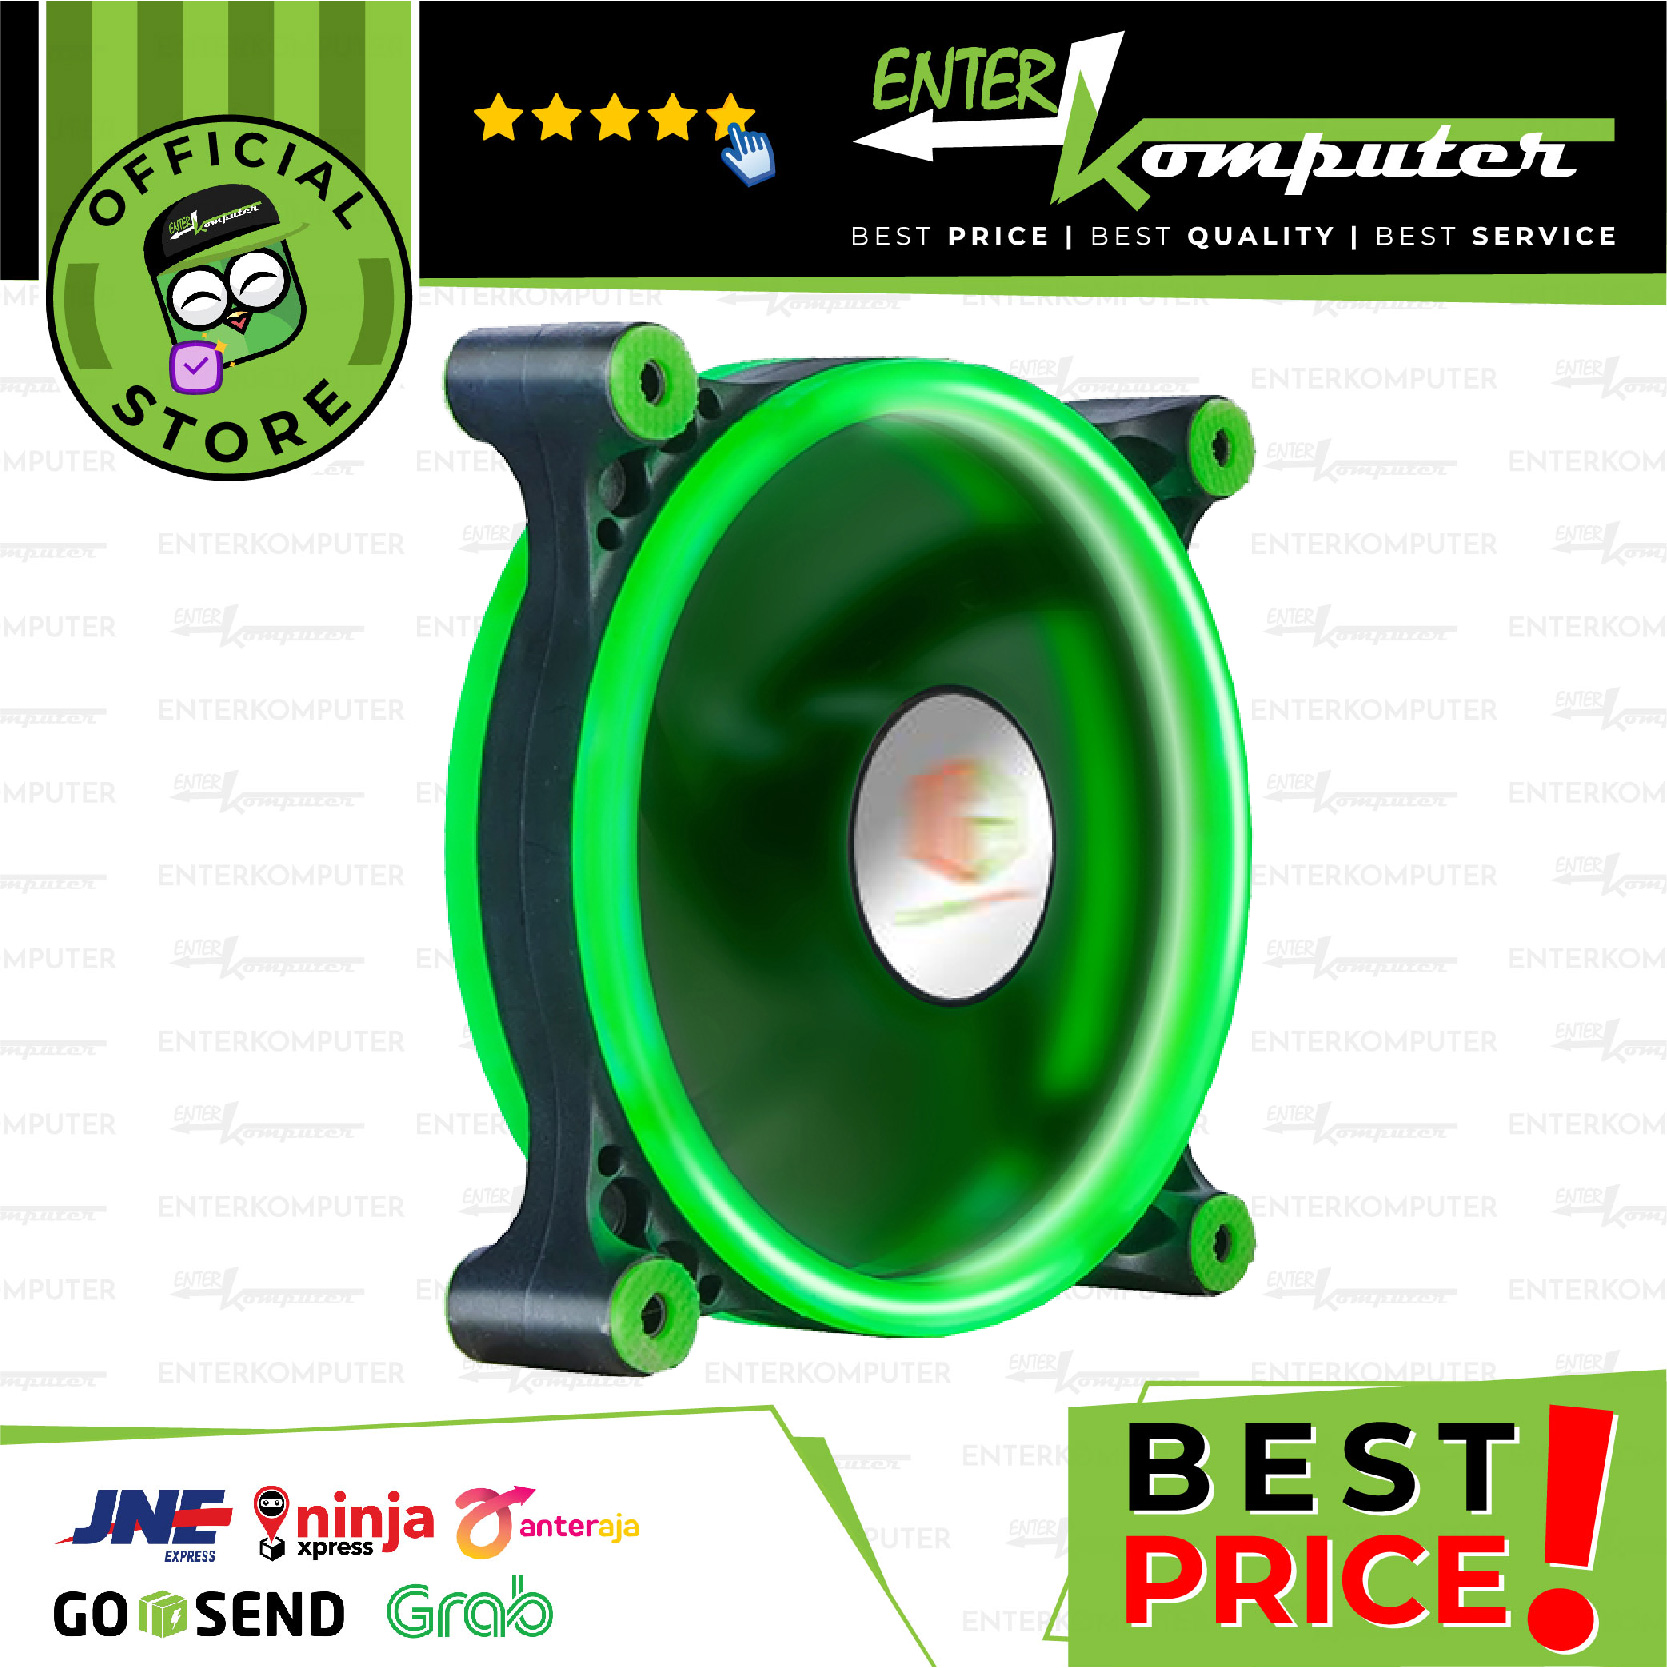 CUBE GAMING DOUBLE RING FAN V2.0 12CM 1300RPM GREEN LED